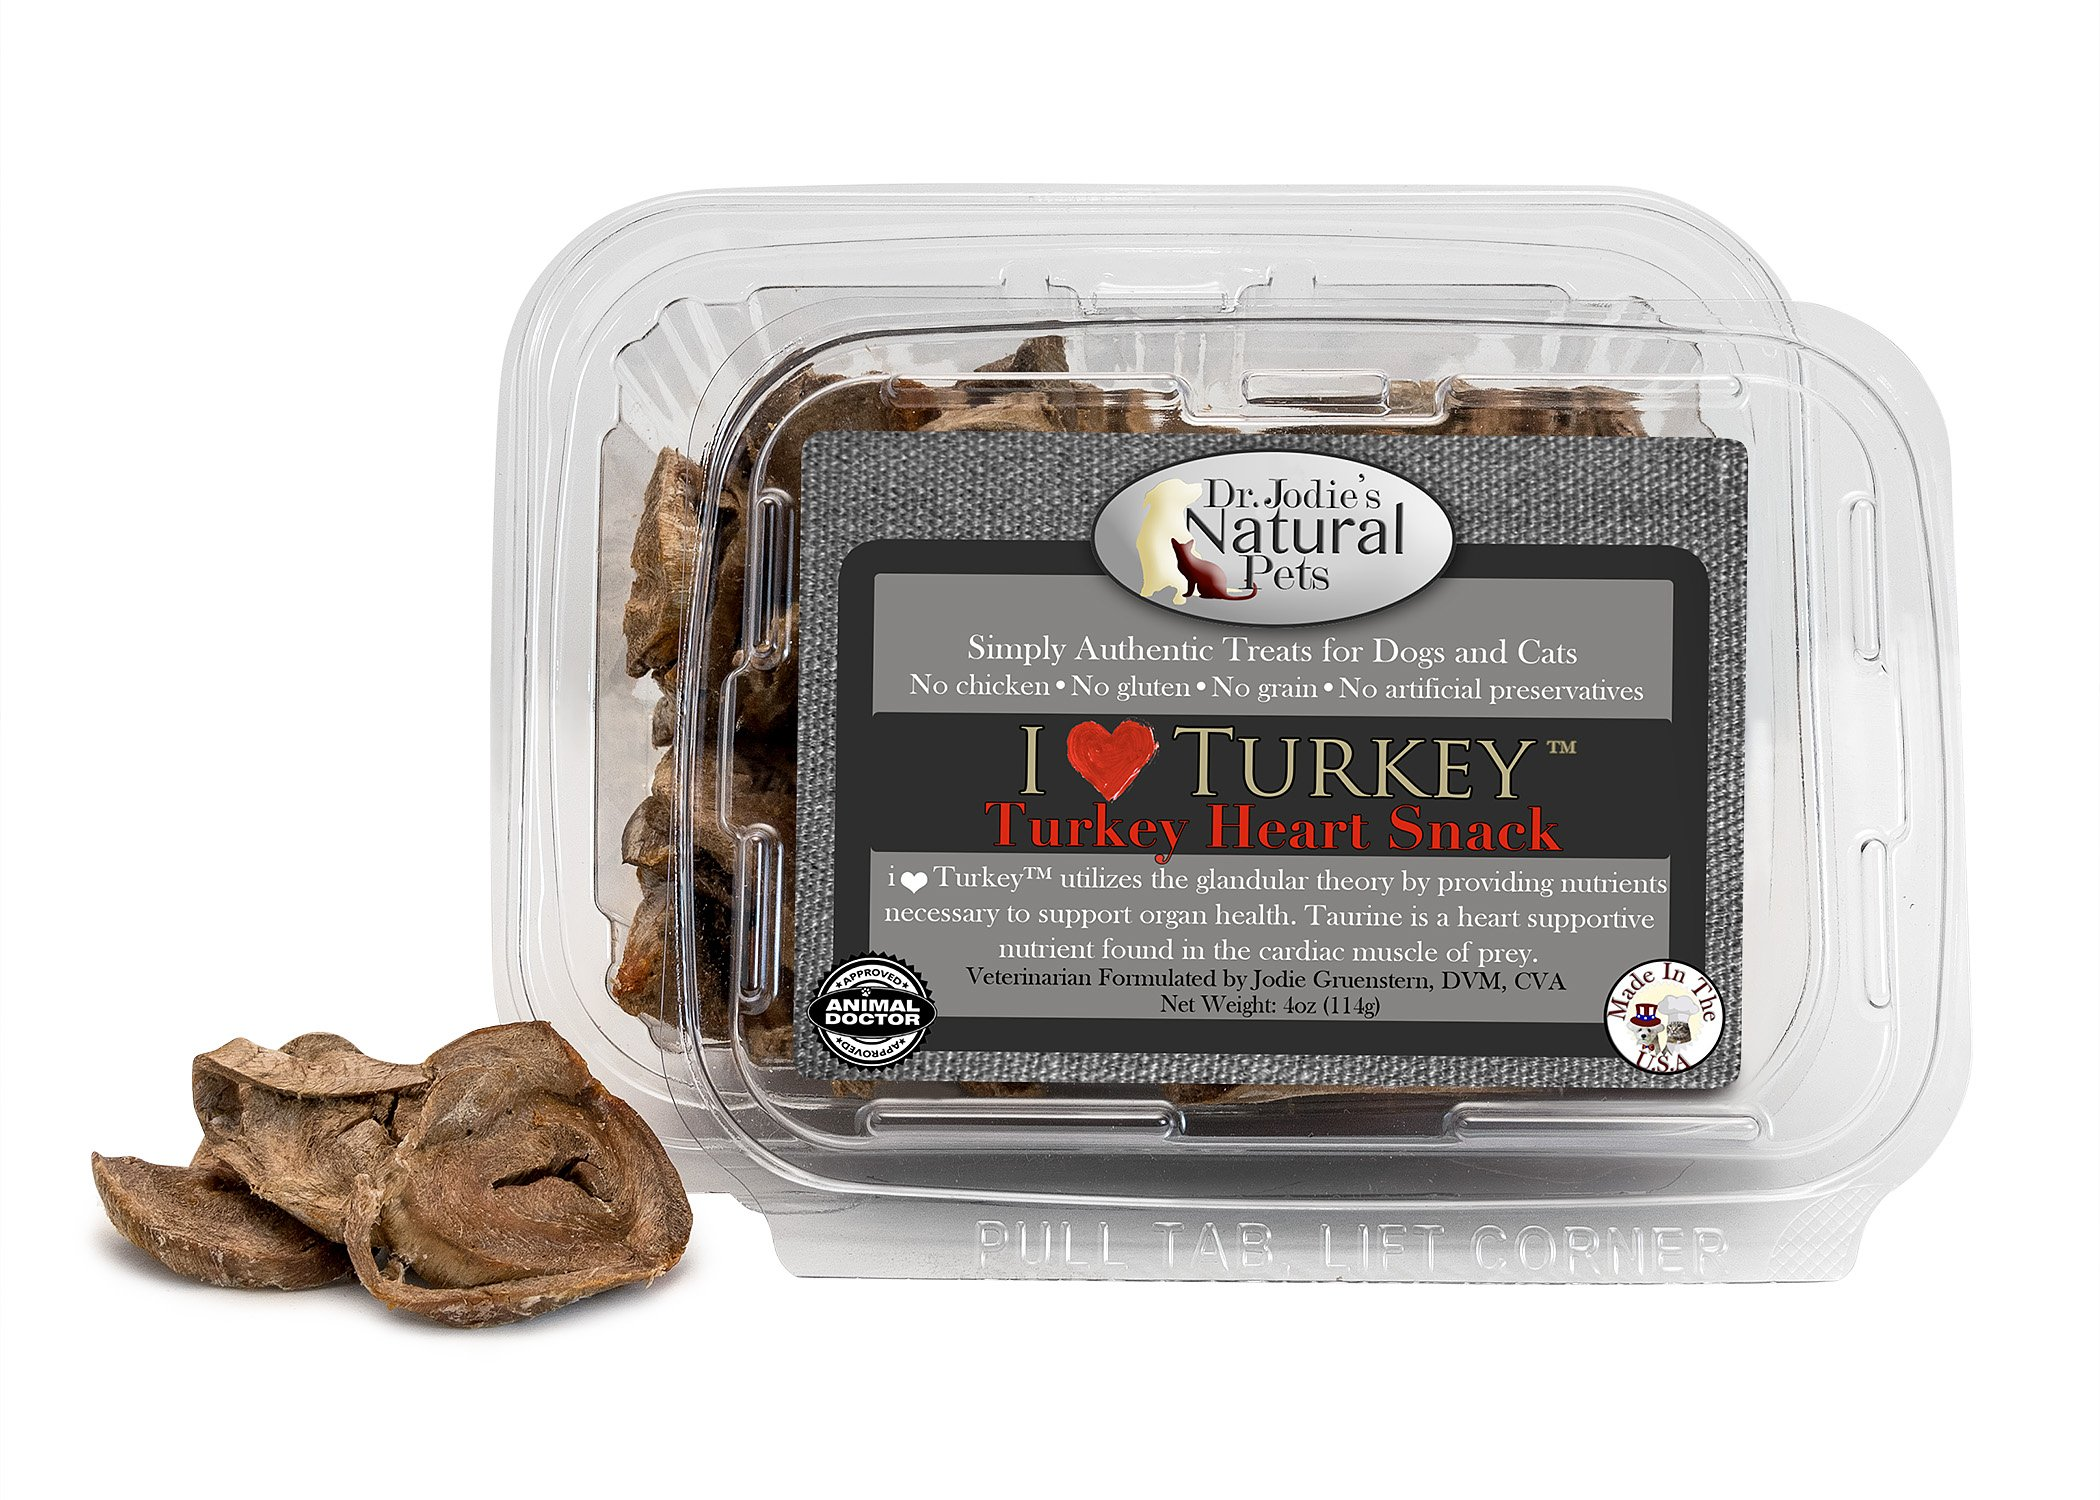 Dr. Jodie's Natural Pets i Heart Turkey